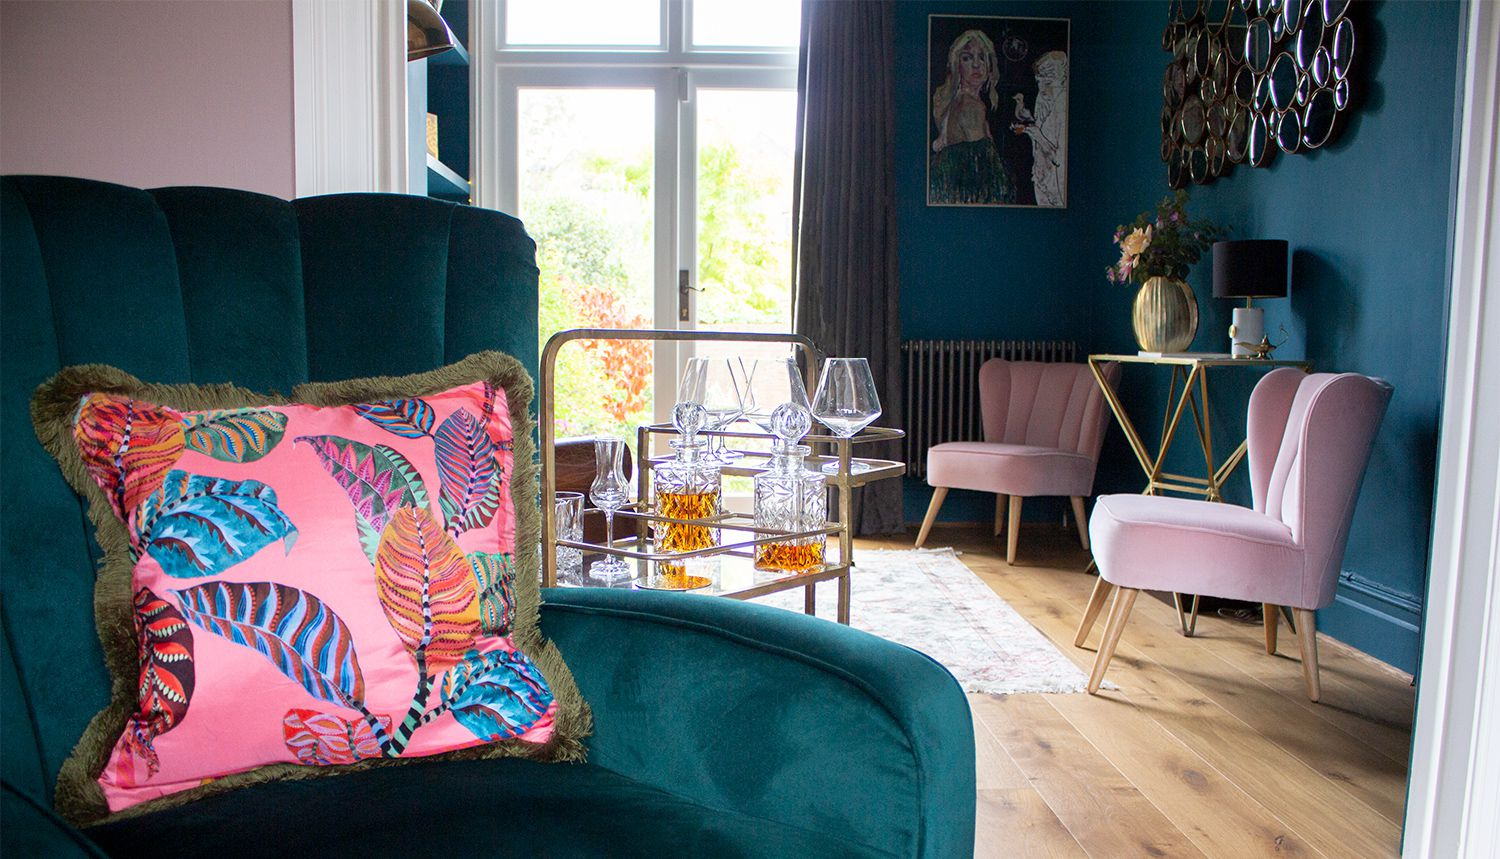 A view into the teal painted room, looking past the green velvet armchair with a pink cushion on it.